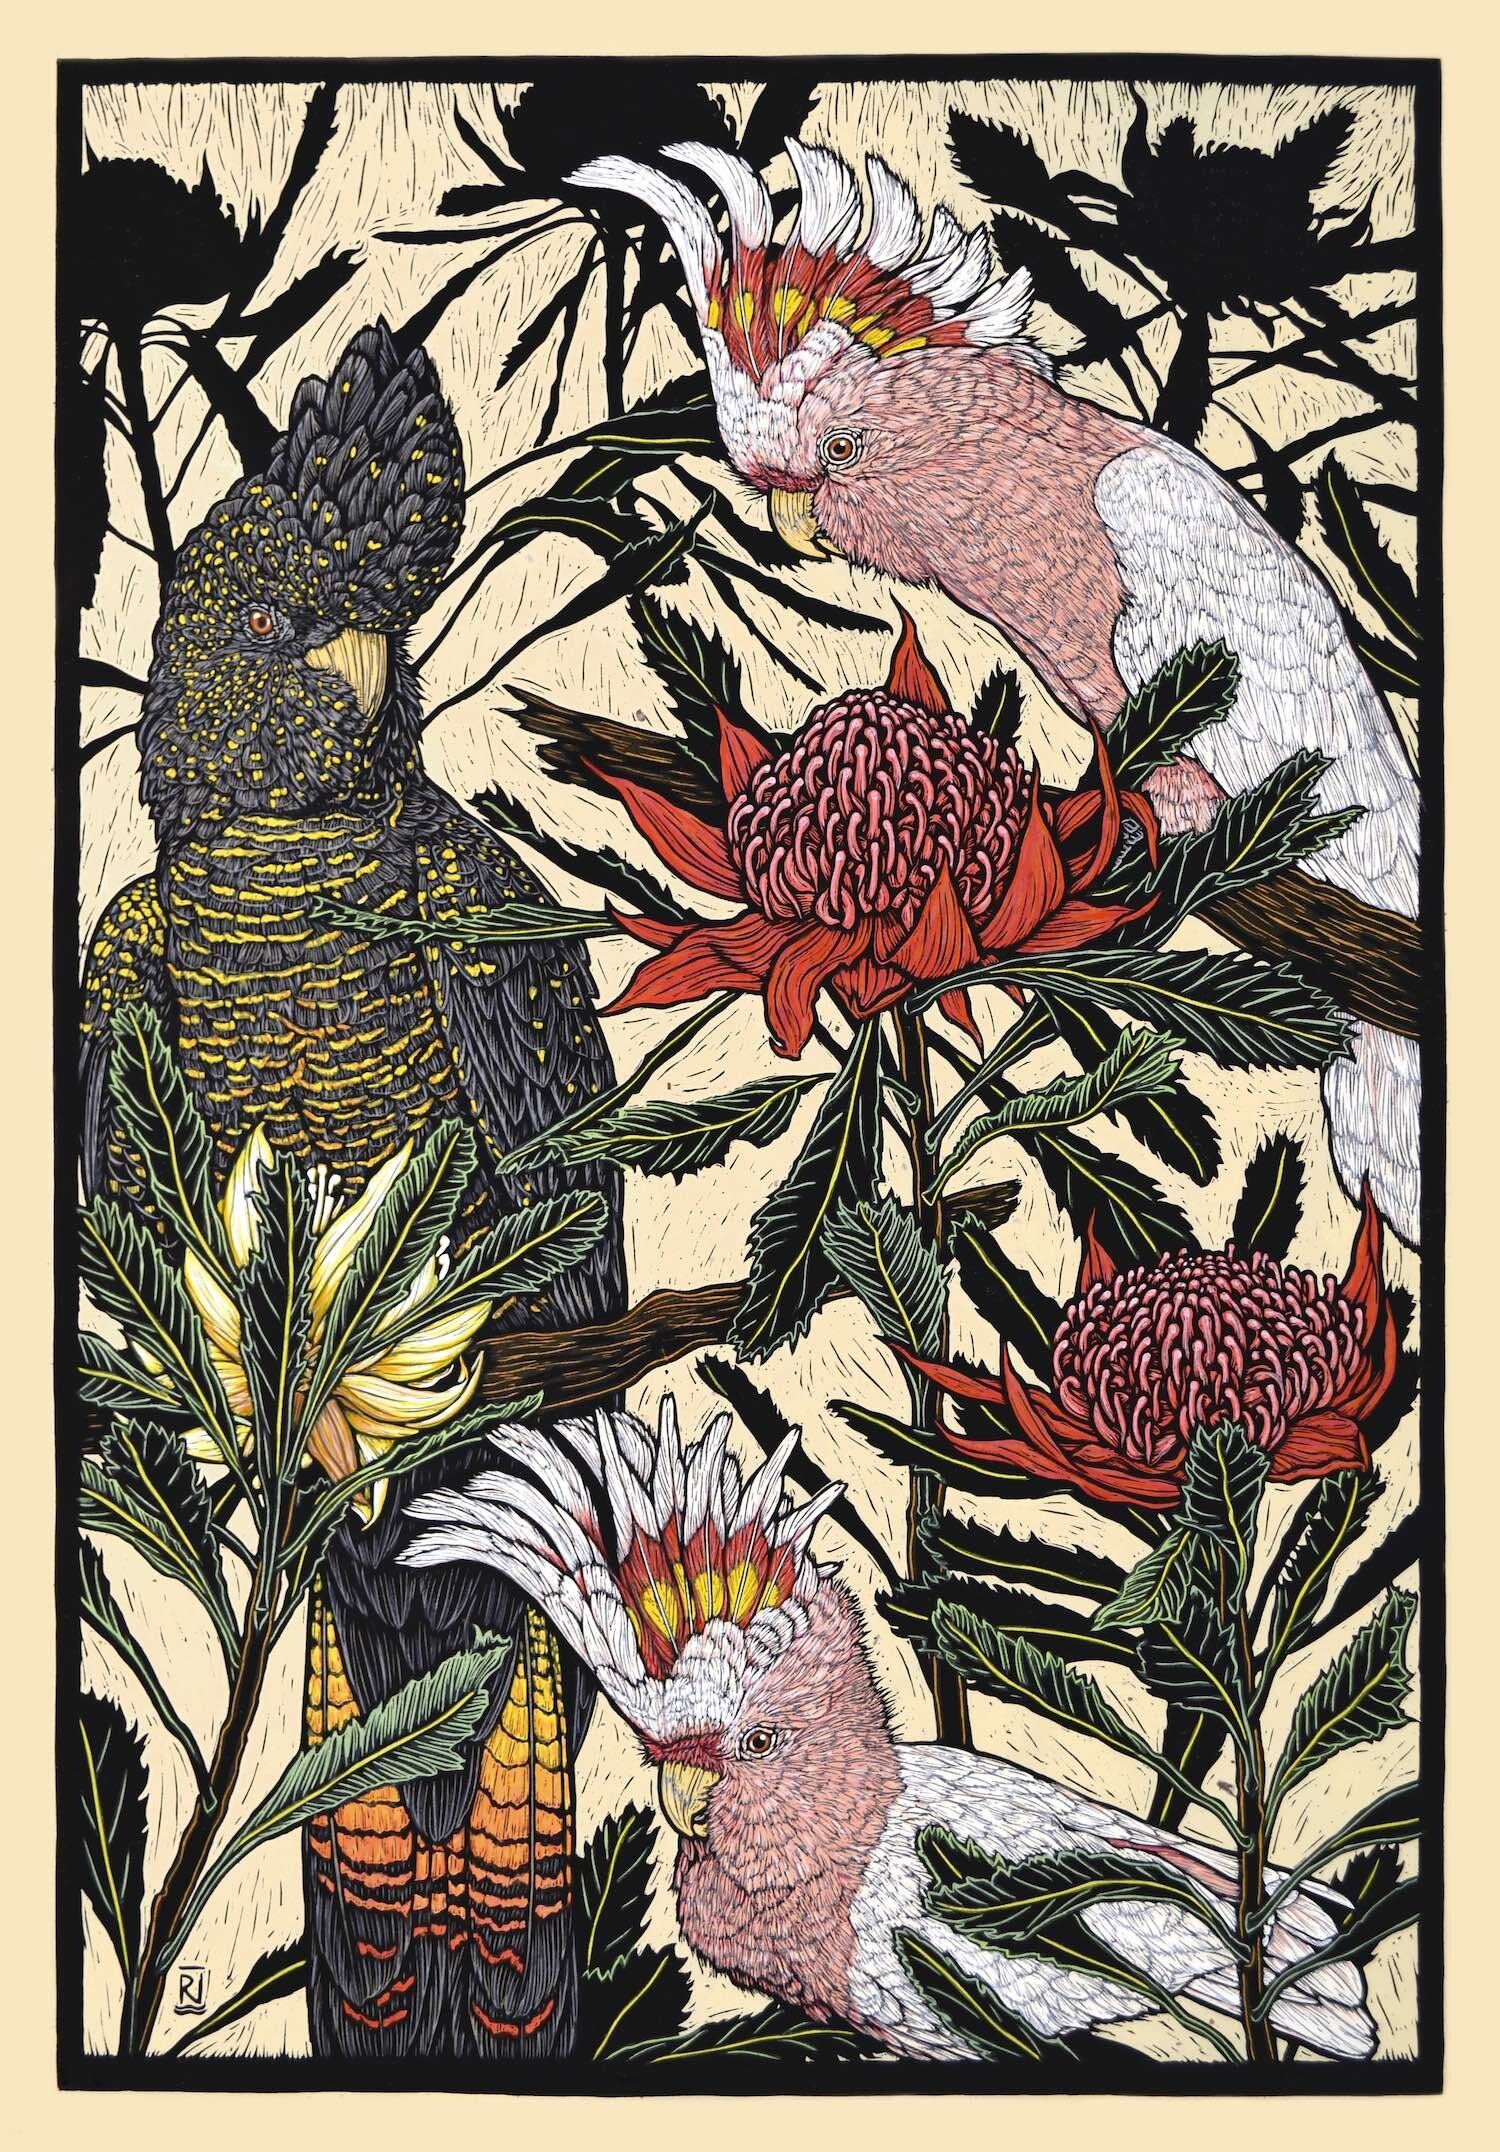 major mitchell cockatoo & red-tailed black cockatoo with waratah  76 x 51 Cm, Edition of 50  Hand-Coloured Linocut on Handmade Japanese paper  $1,700